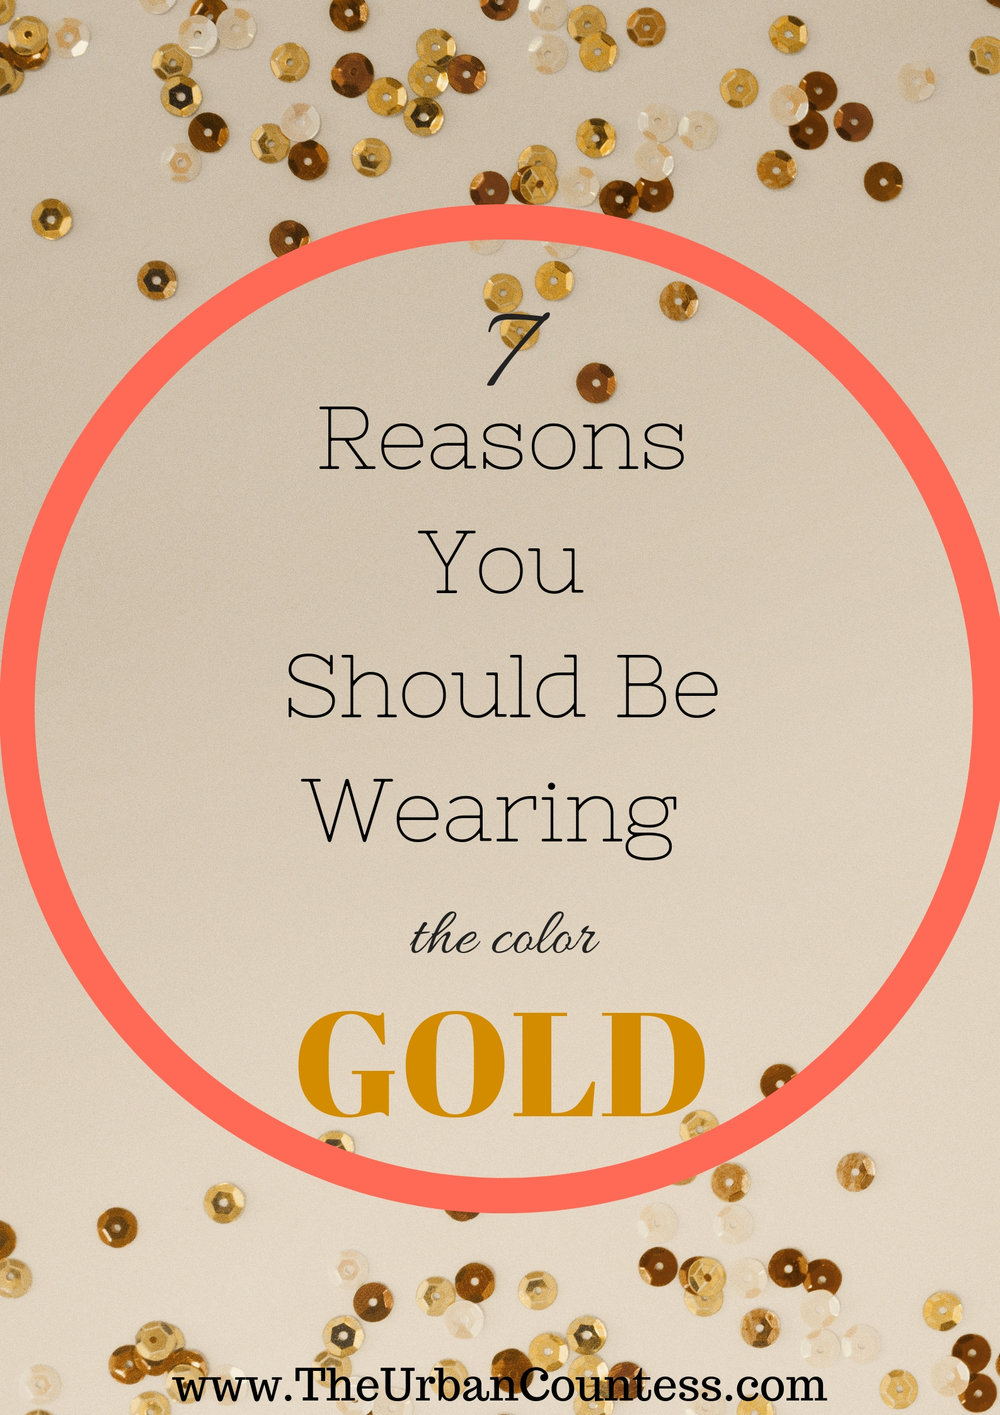 7 Reasons You Should Be Wearing Gold | www.TheUrbanCountess.com